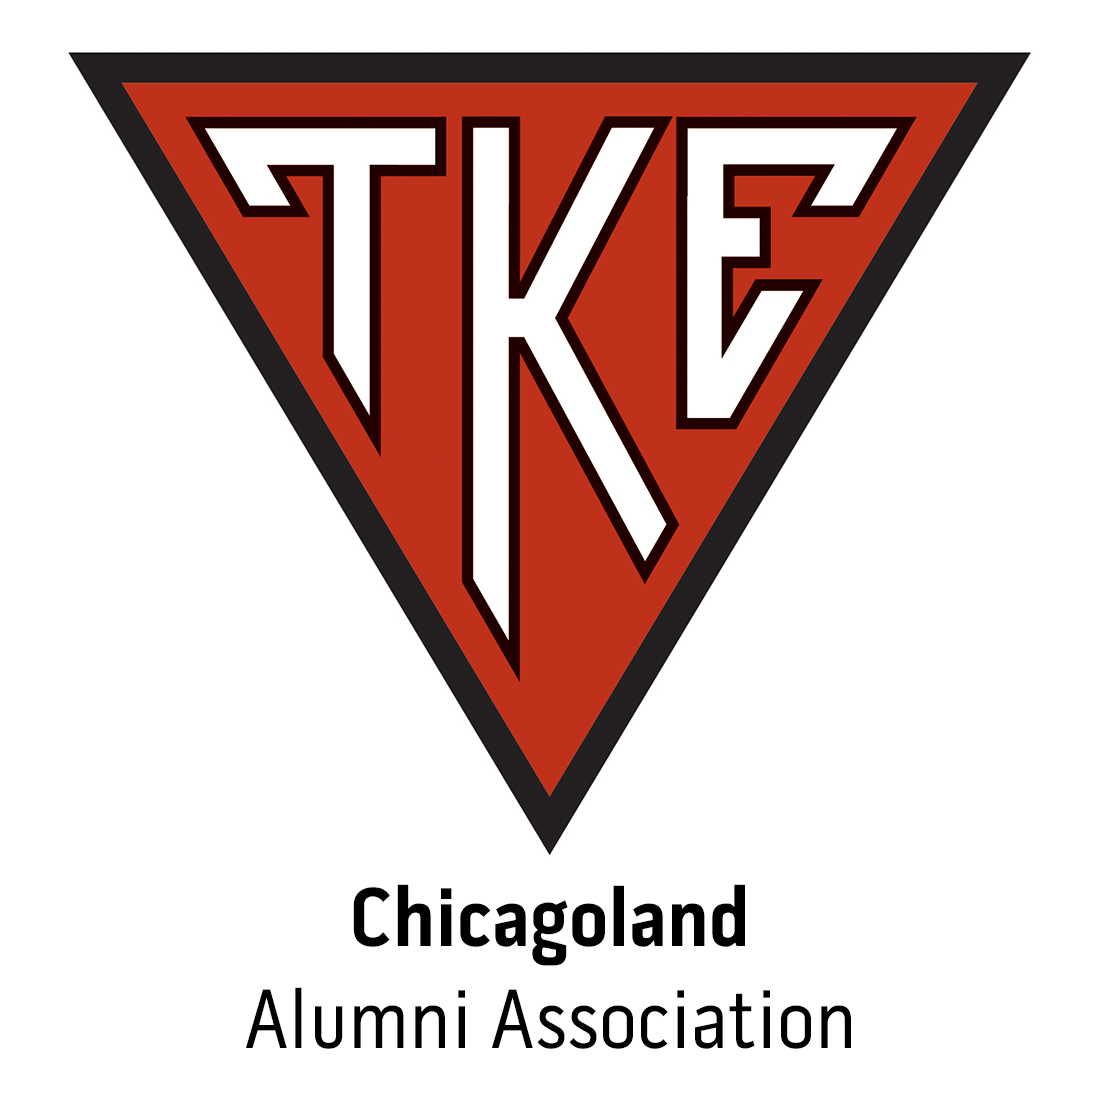 Chicagoland Alumni Association Alumni at Greater Chicago Area Illinois